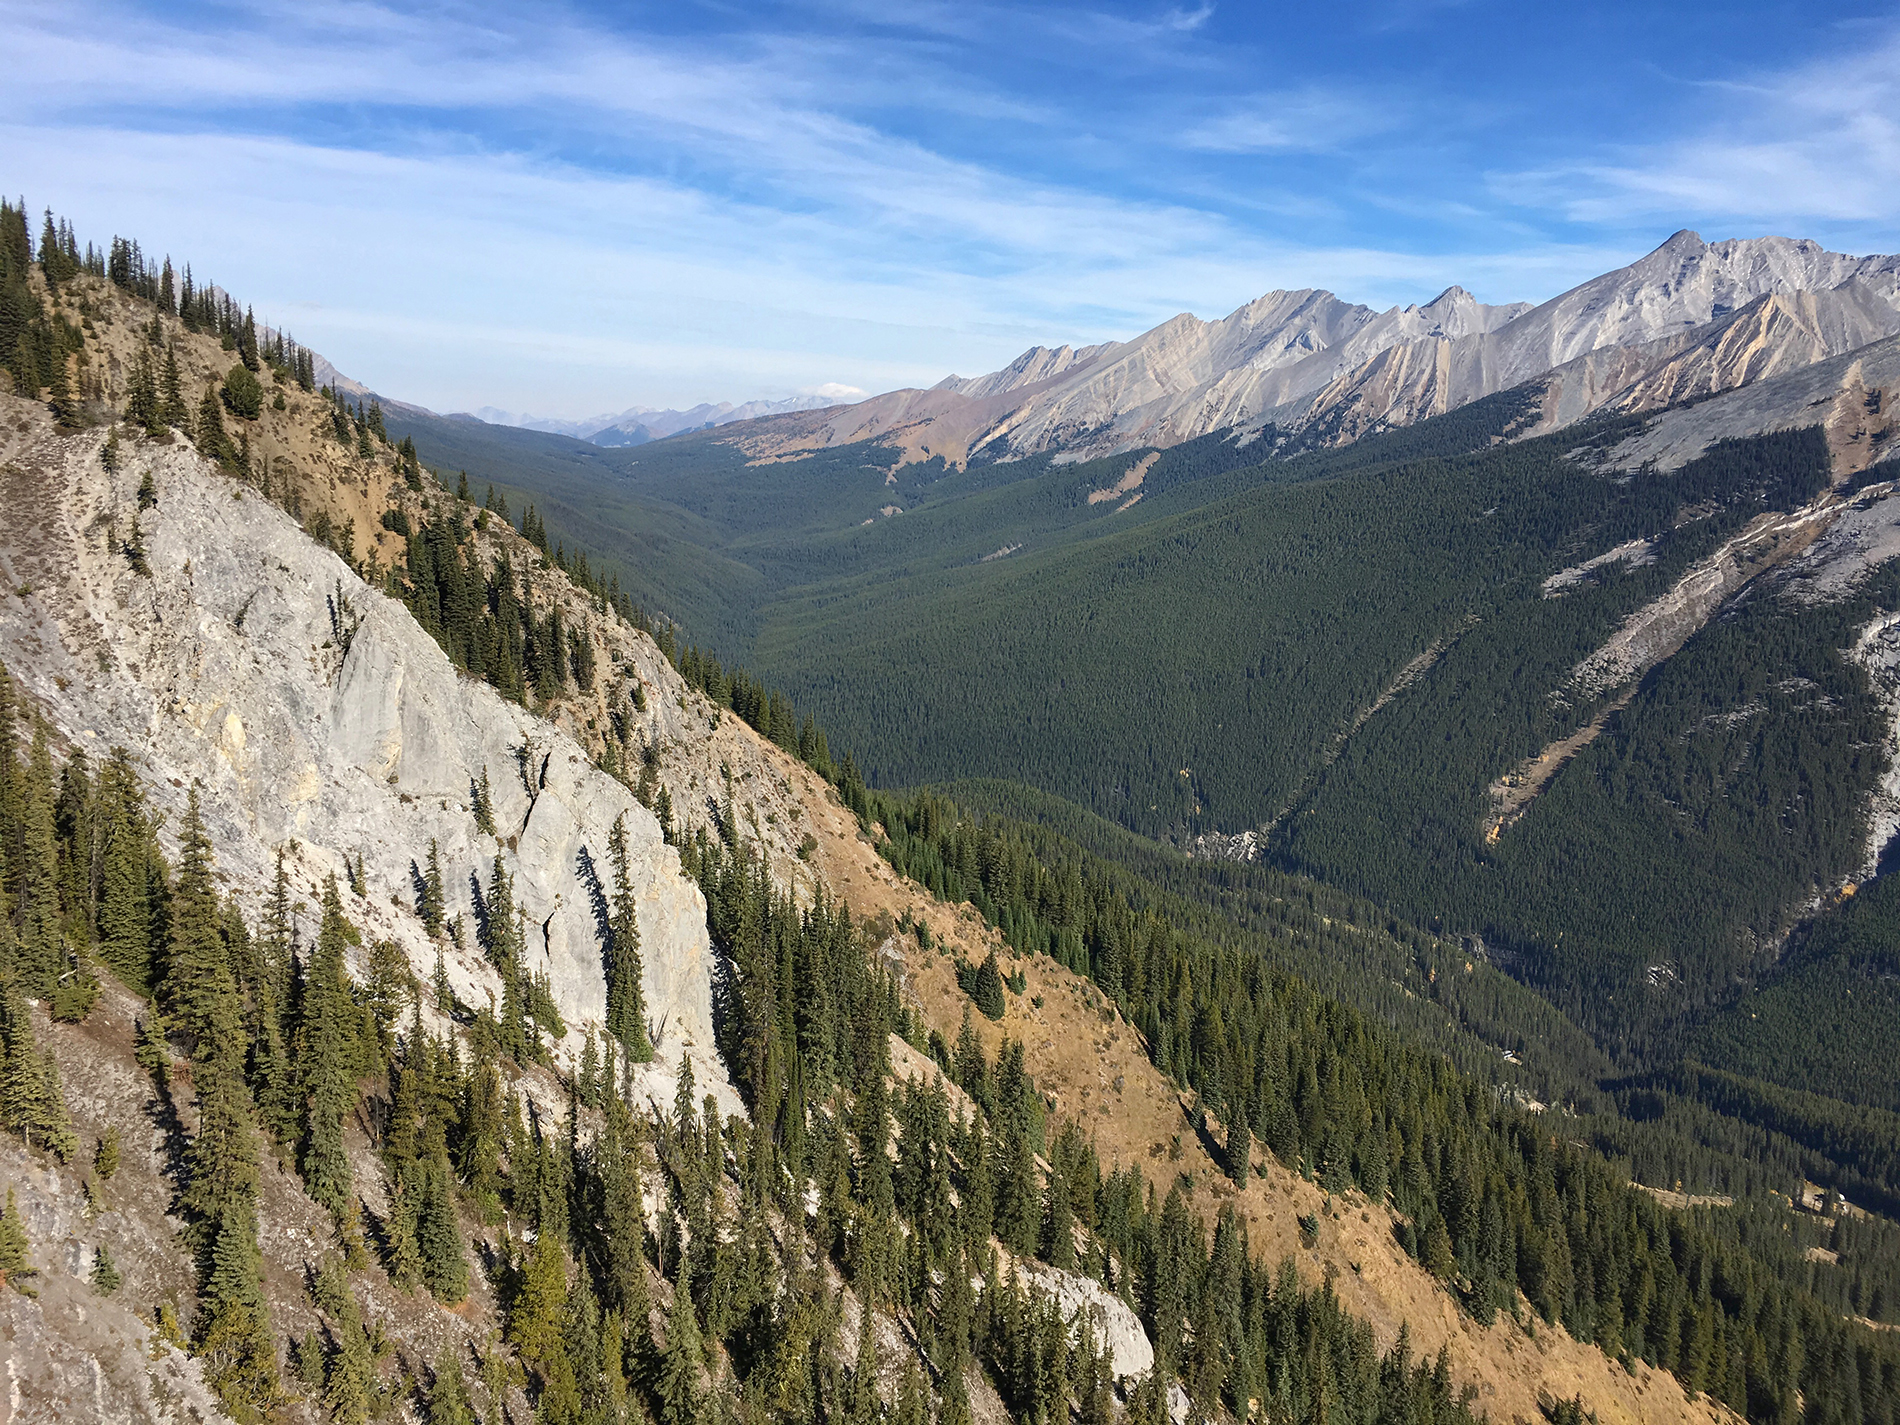 Panoramic views from the top of Mt. Norquay